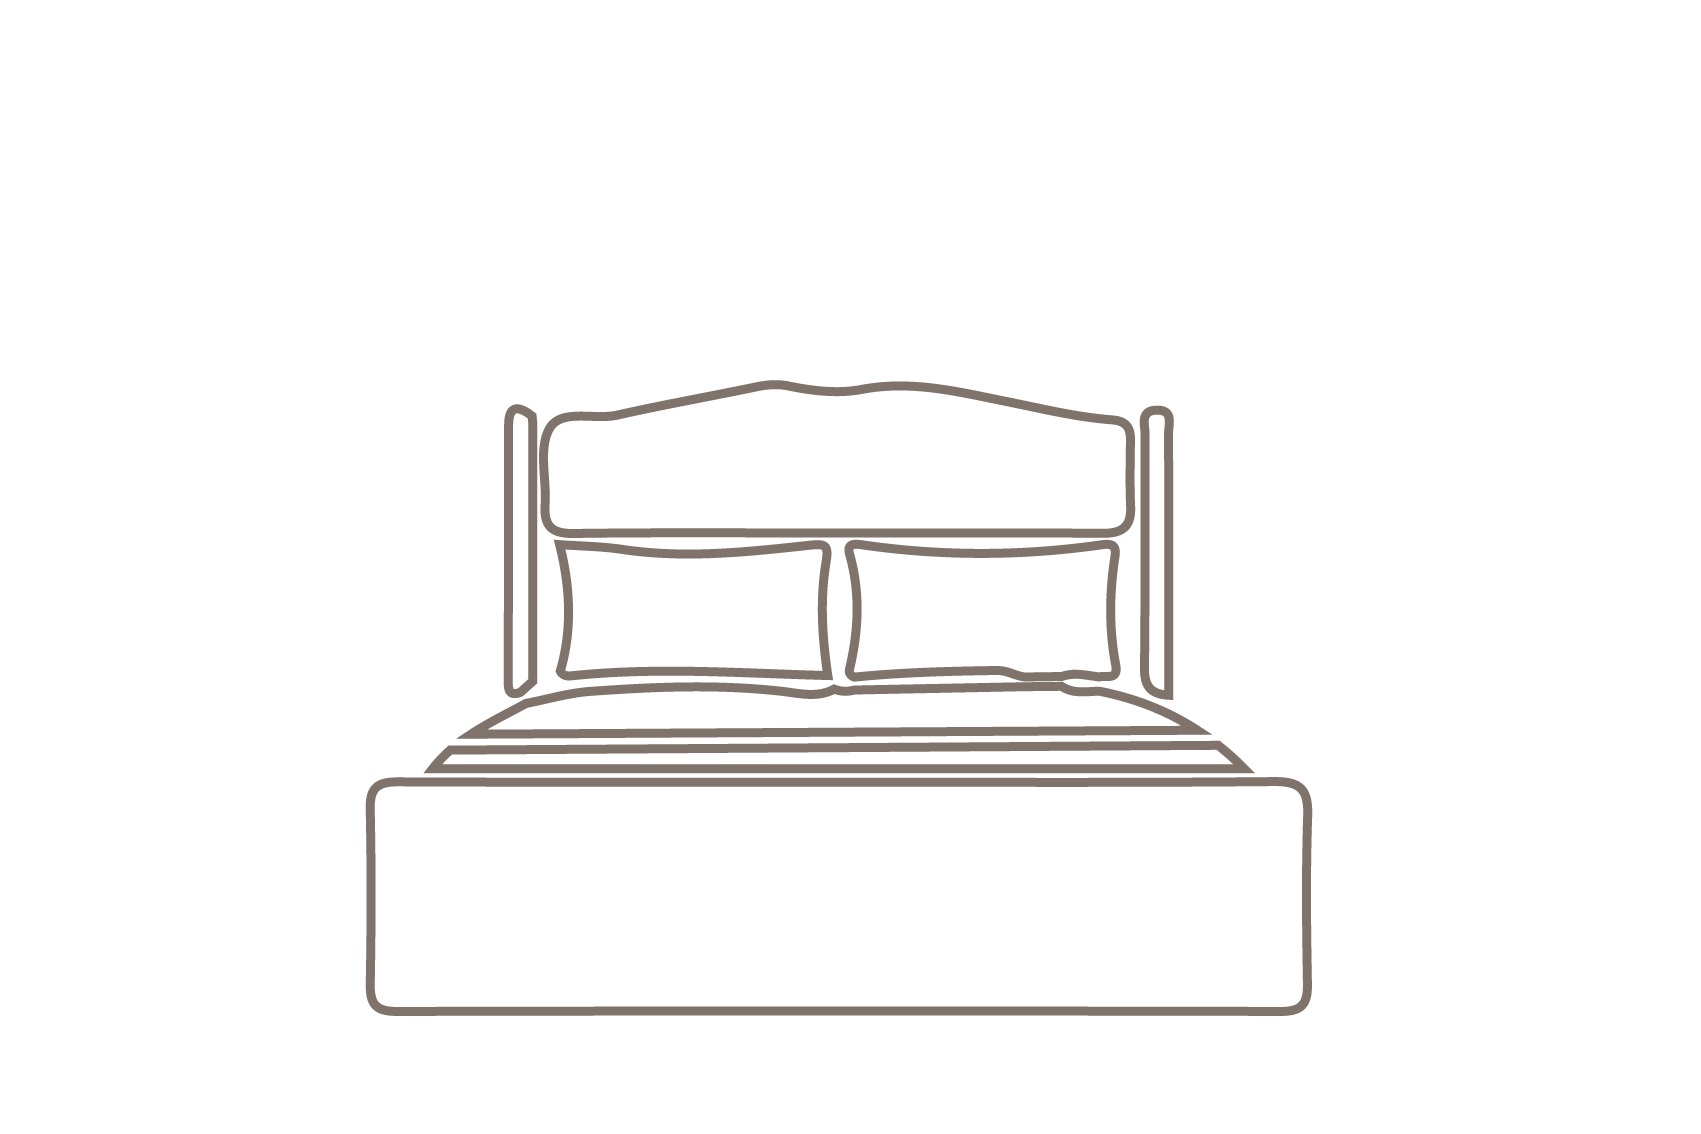 Bed+Icon-13.jpg